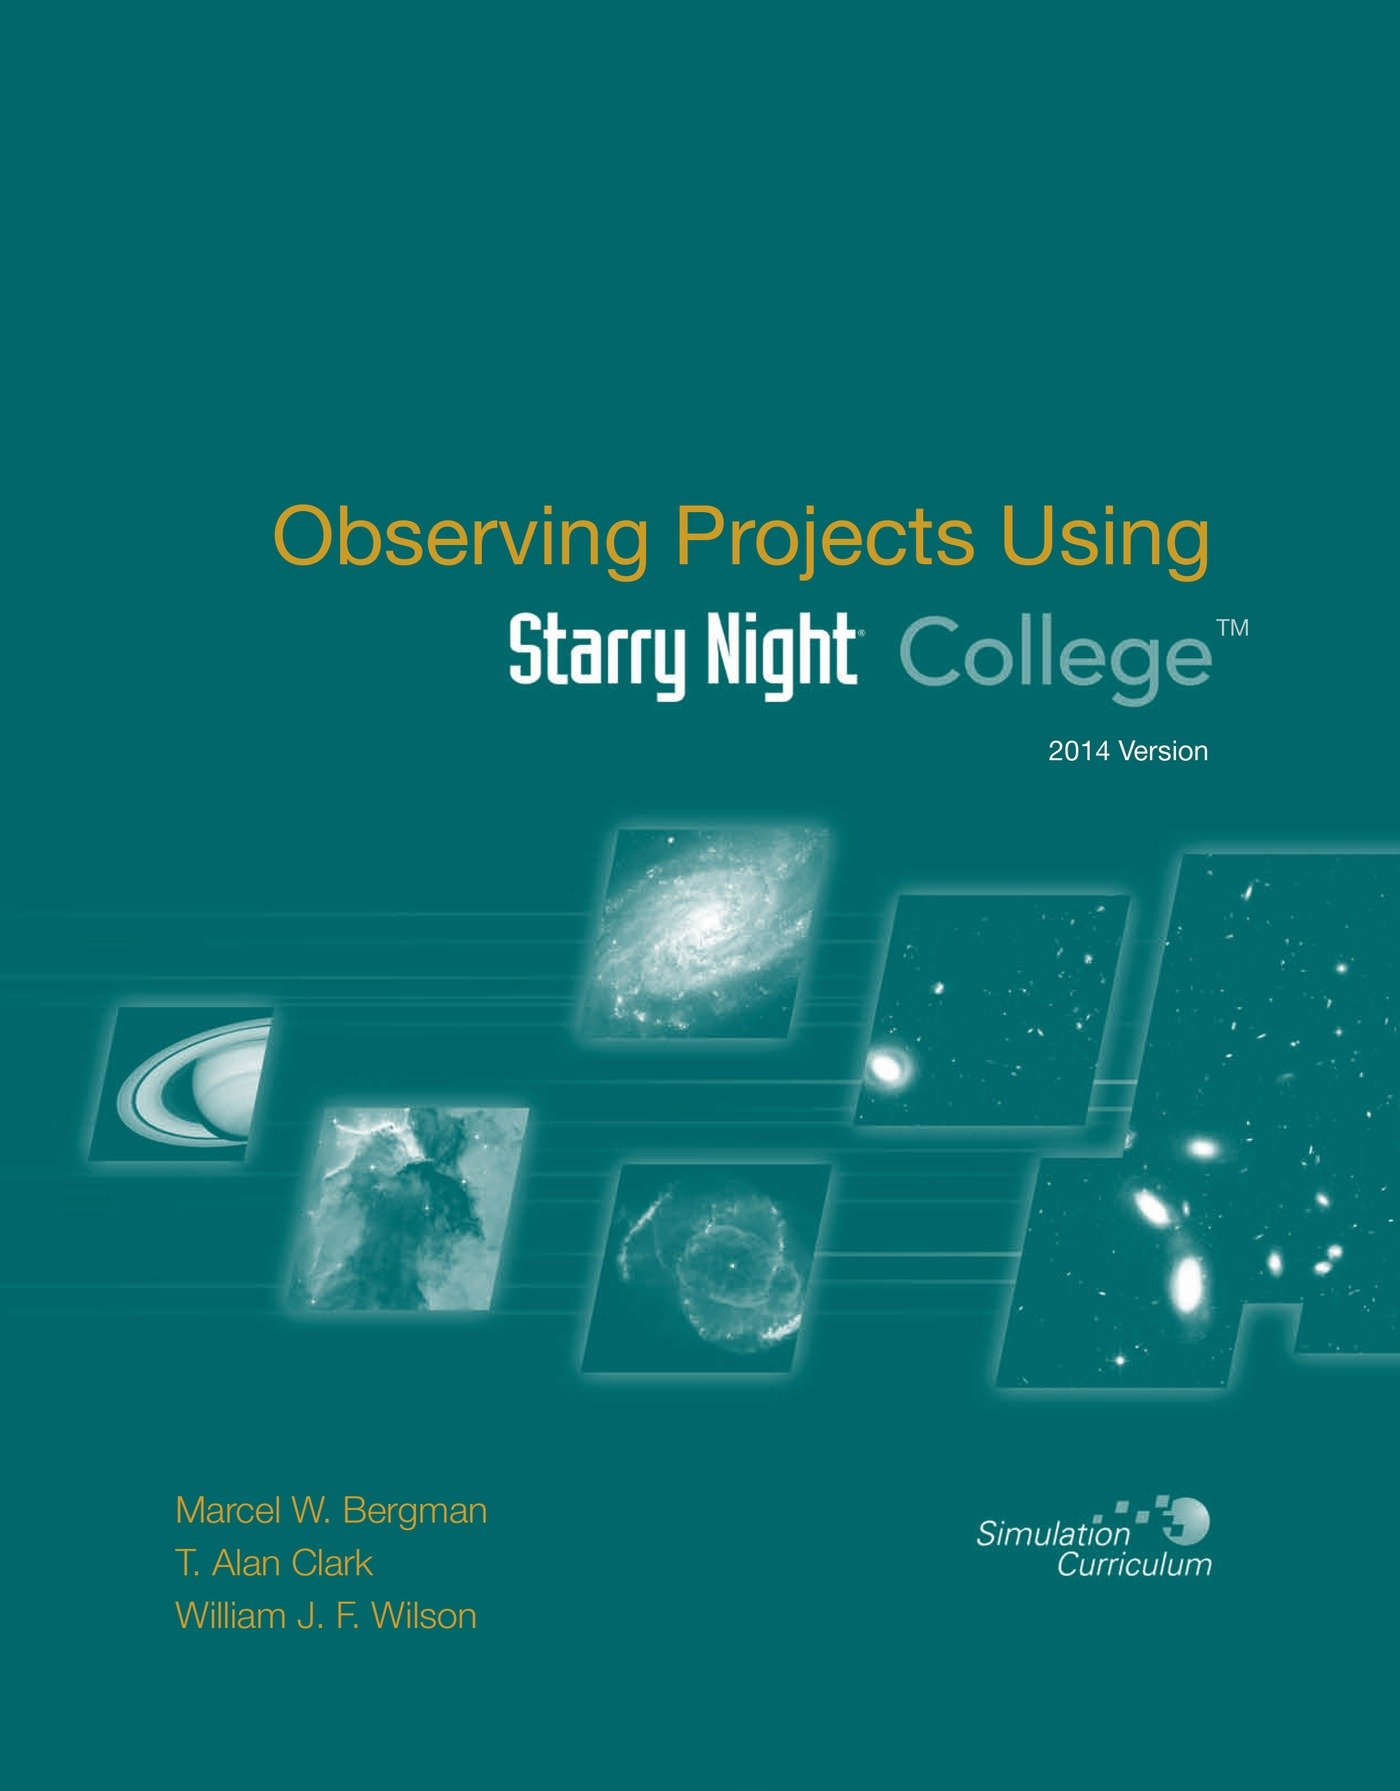 Observing projects fstarry night coll marcel w bergman t alan observing projects fstarry night coll marcel w bergman t alan clark william j f wilson 9781464125027 amazon books fandeluxe Image collections